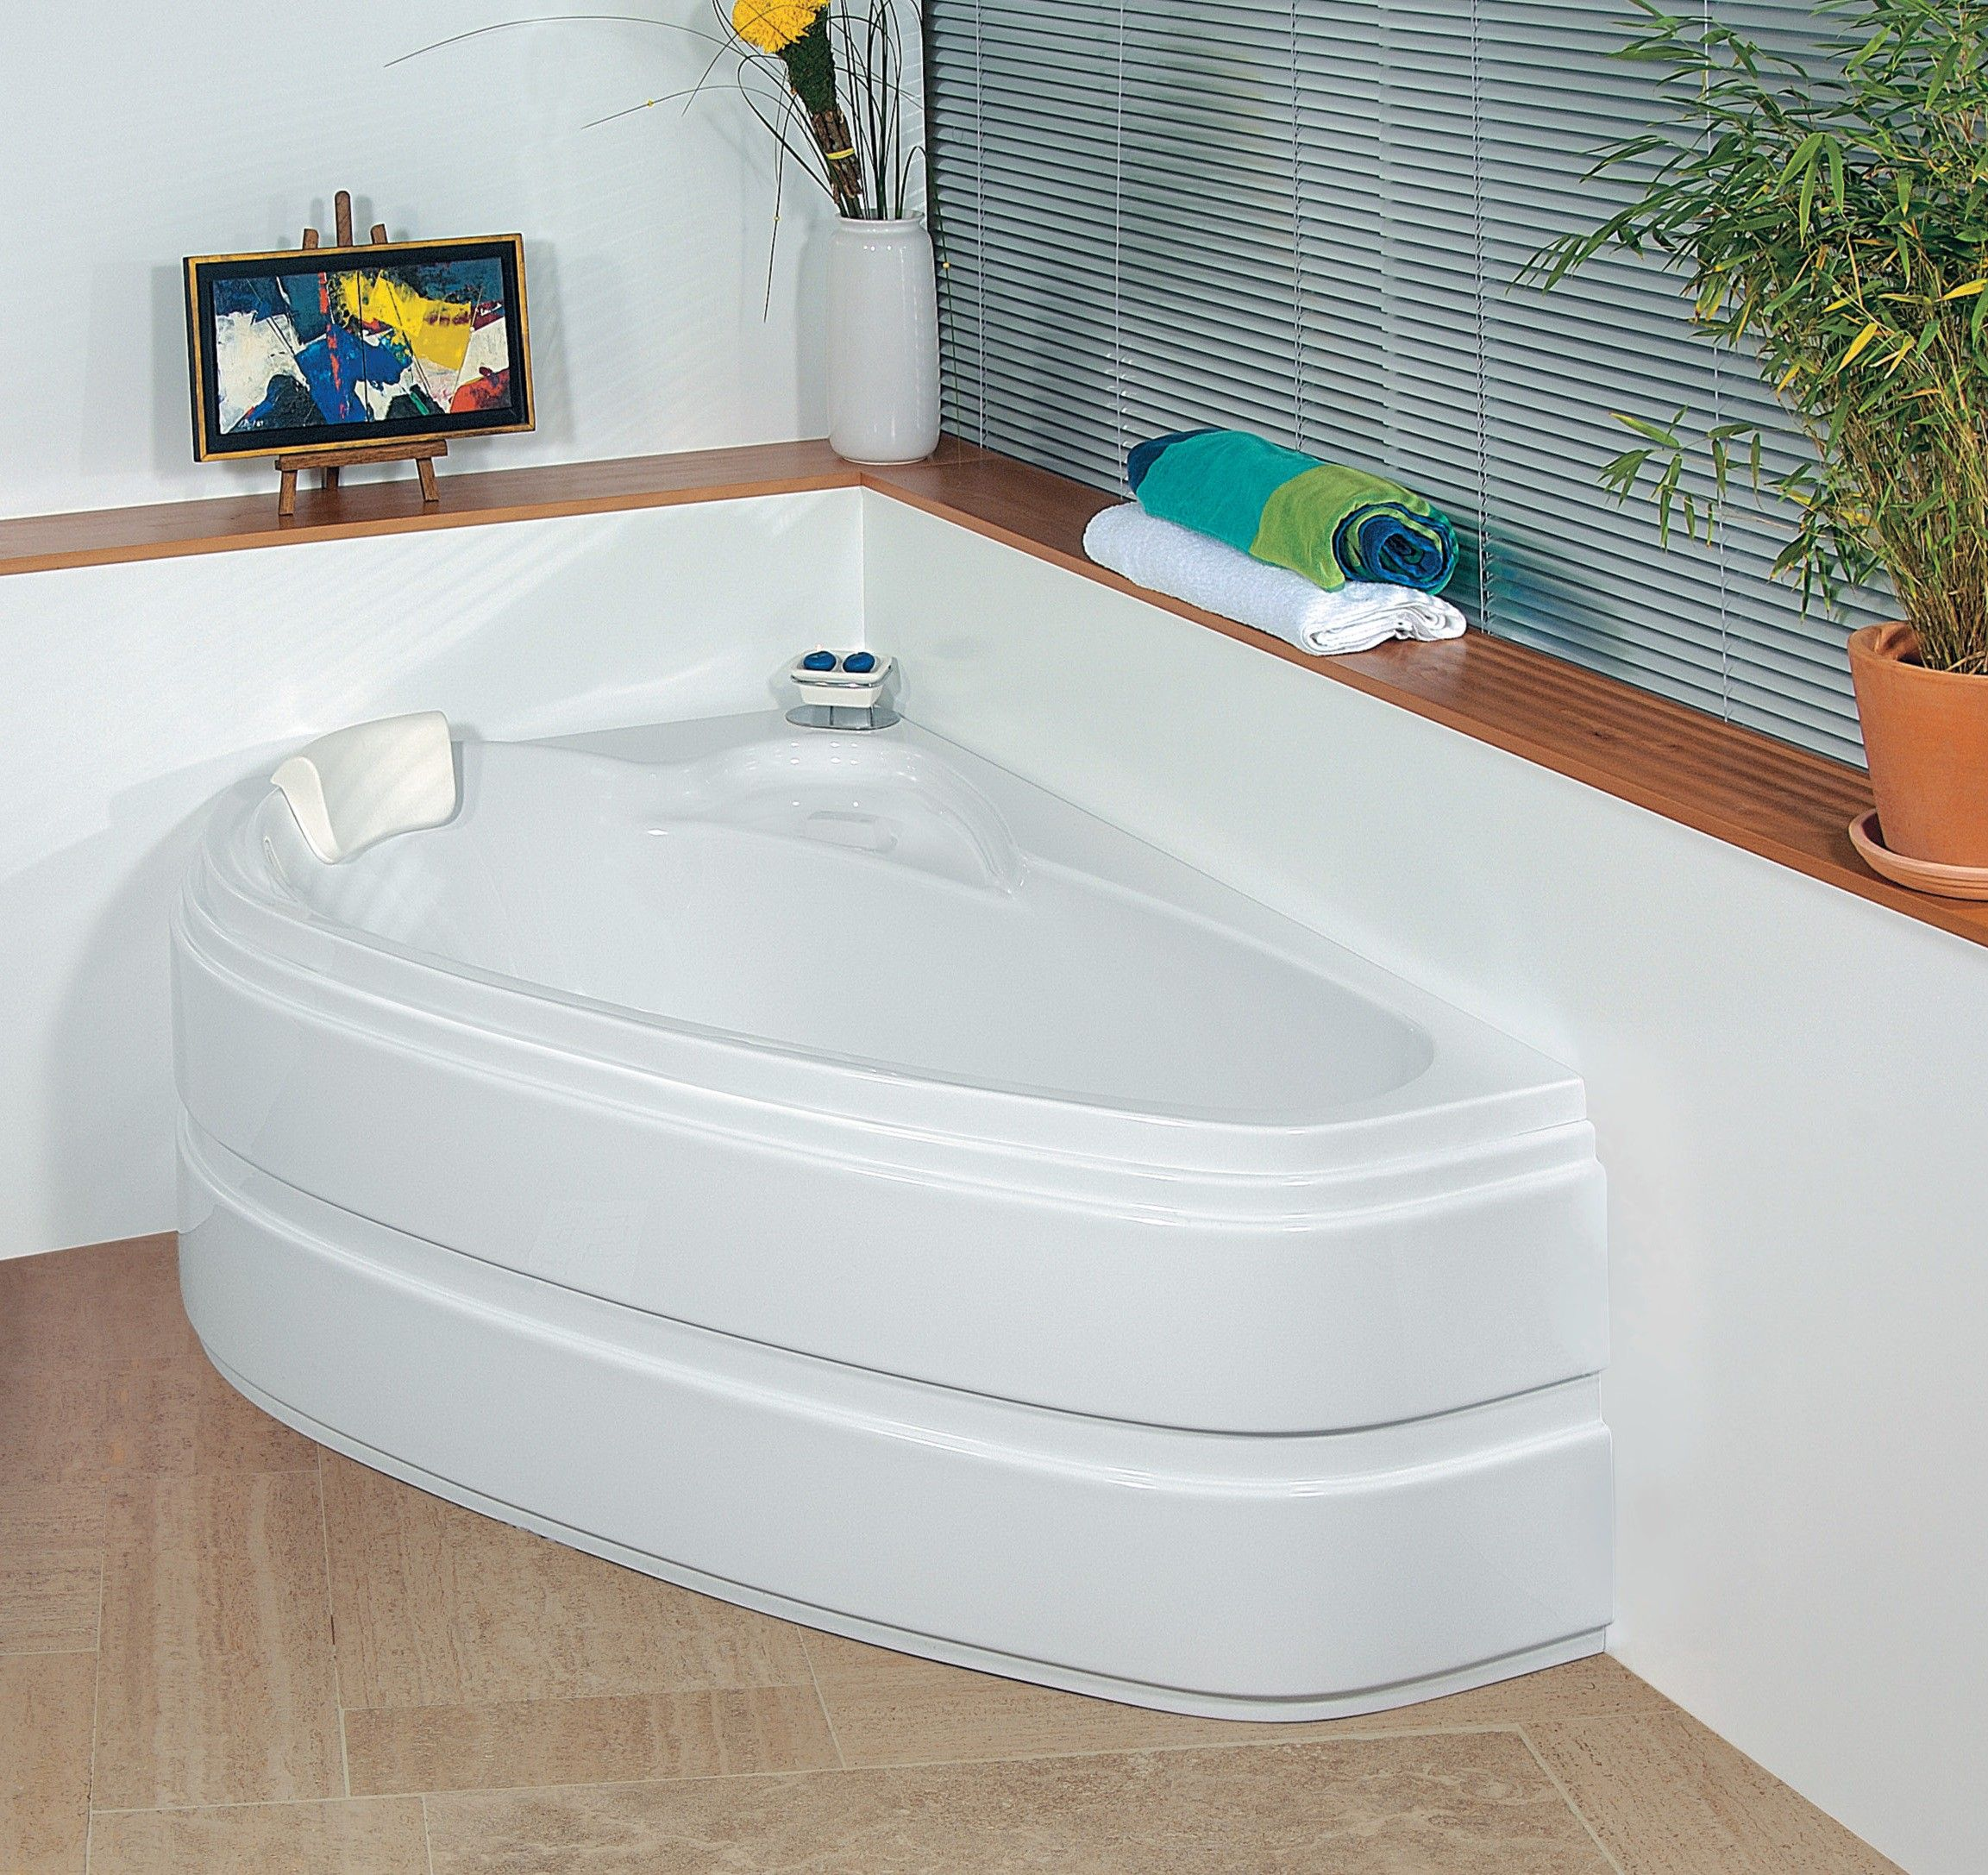 Baignoire Balneo Elba 160 X 105 Cm Corner Bathtub Bathtub Bathroom